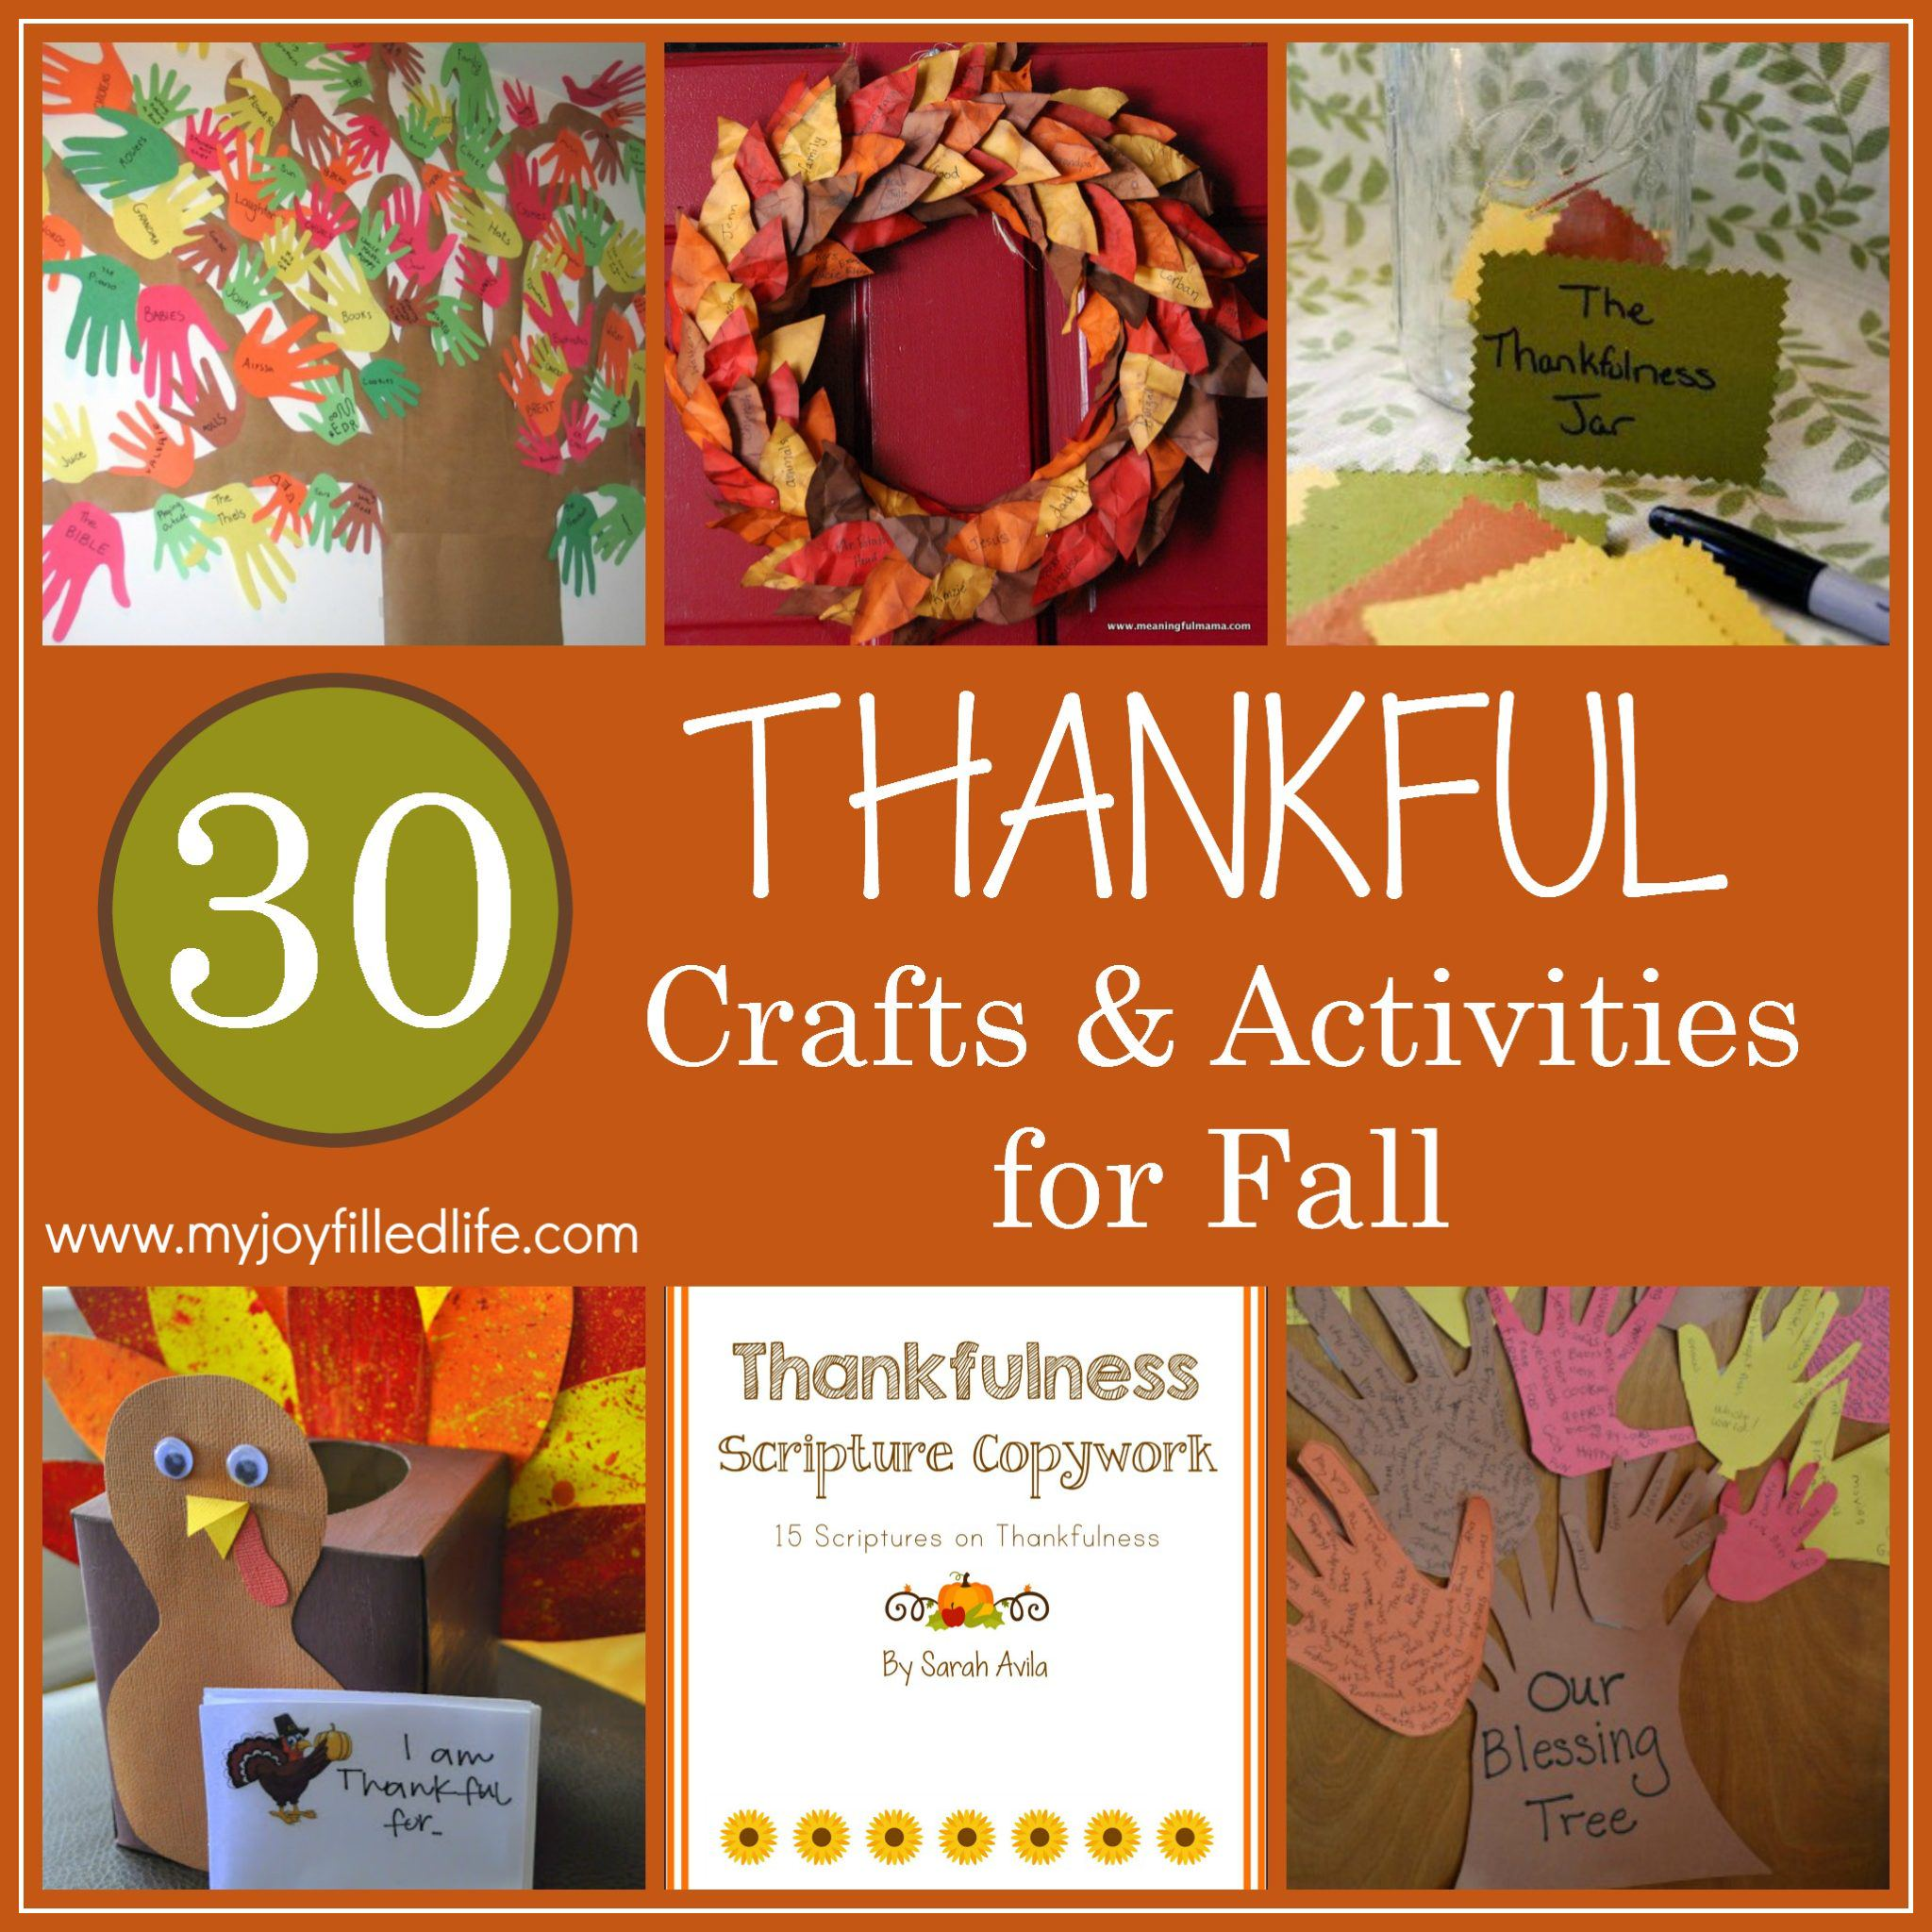 Thankful Crafts and Activities for Fall